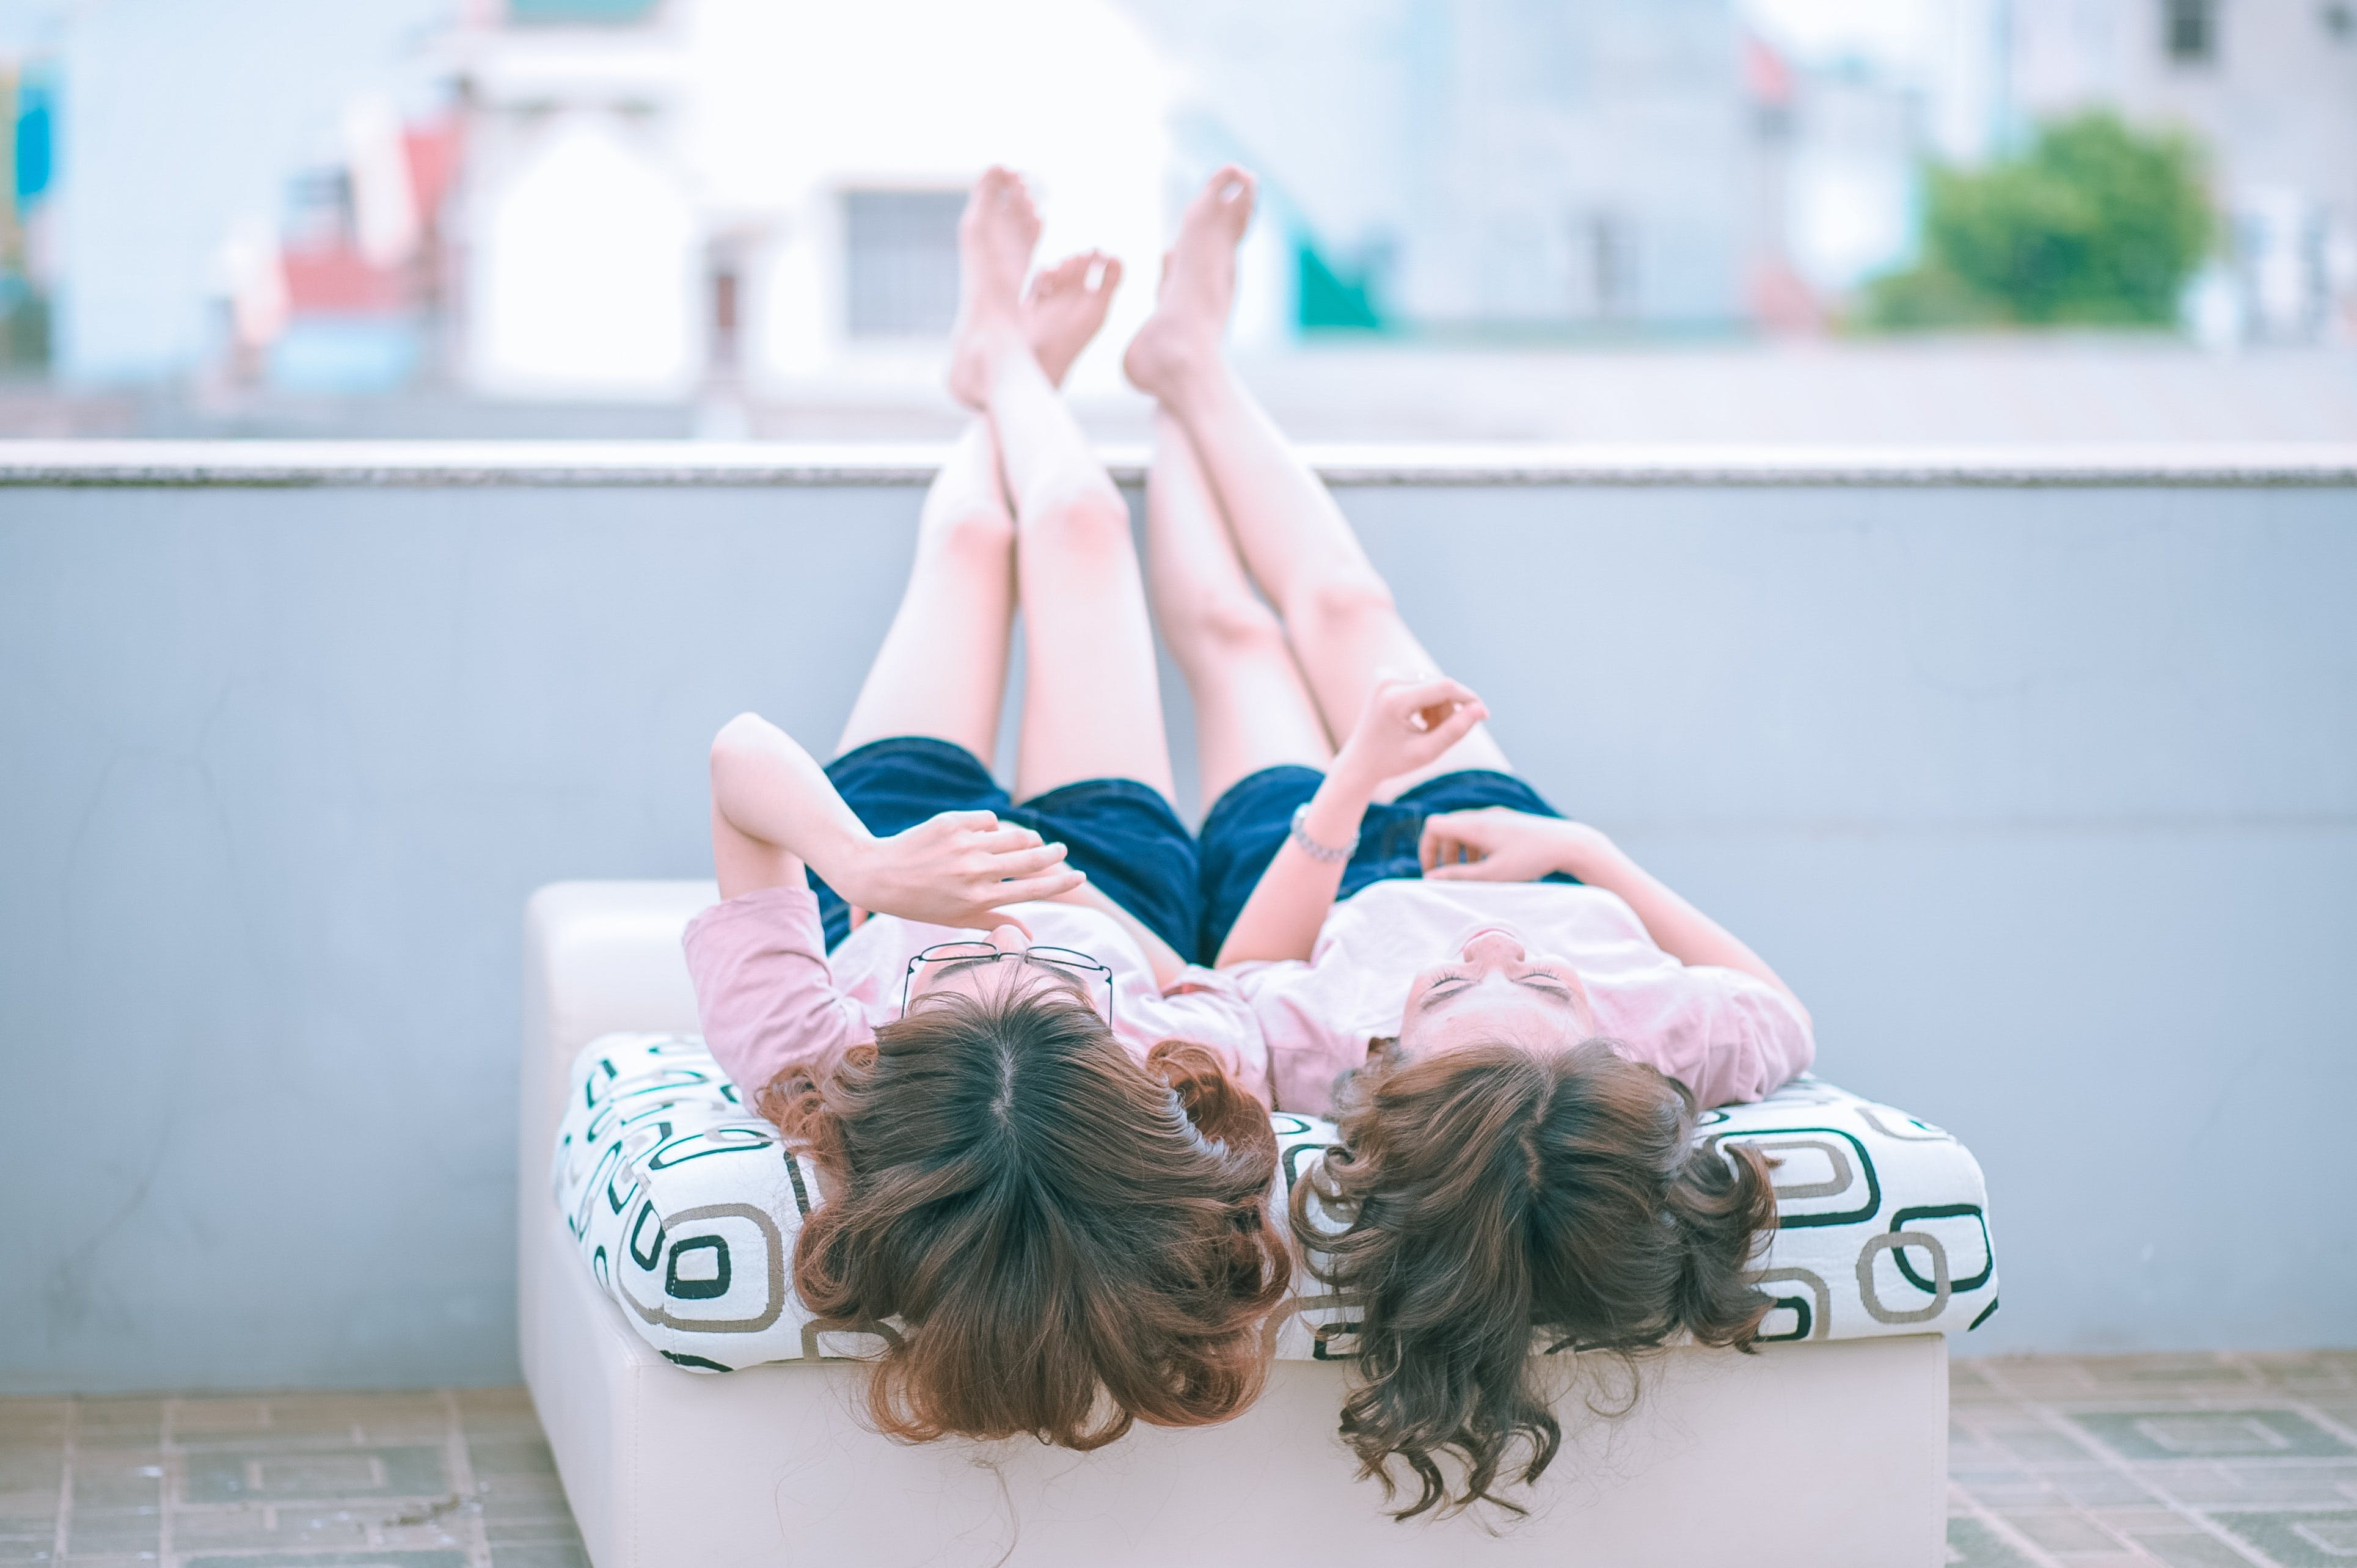 Two Girl Lying on Sofa While Looking Up